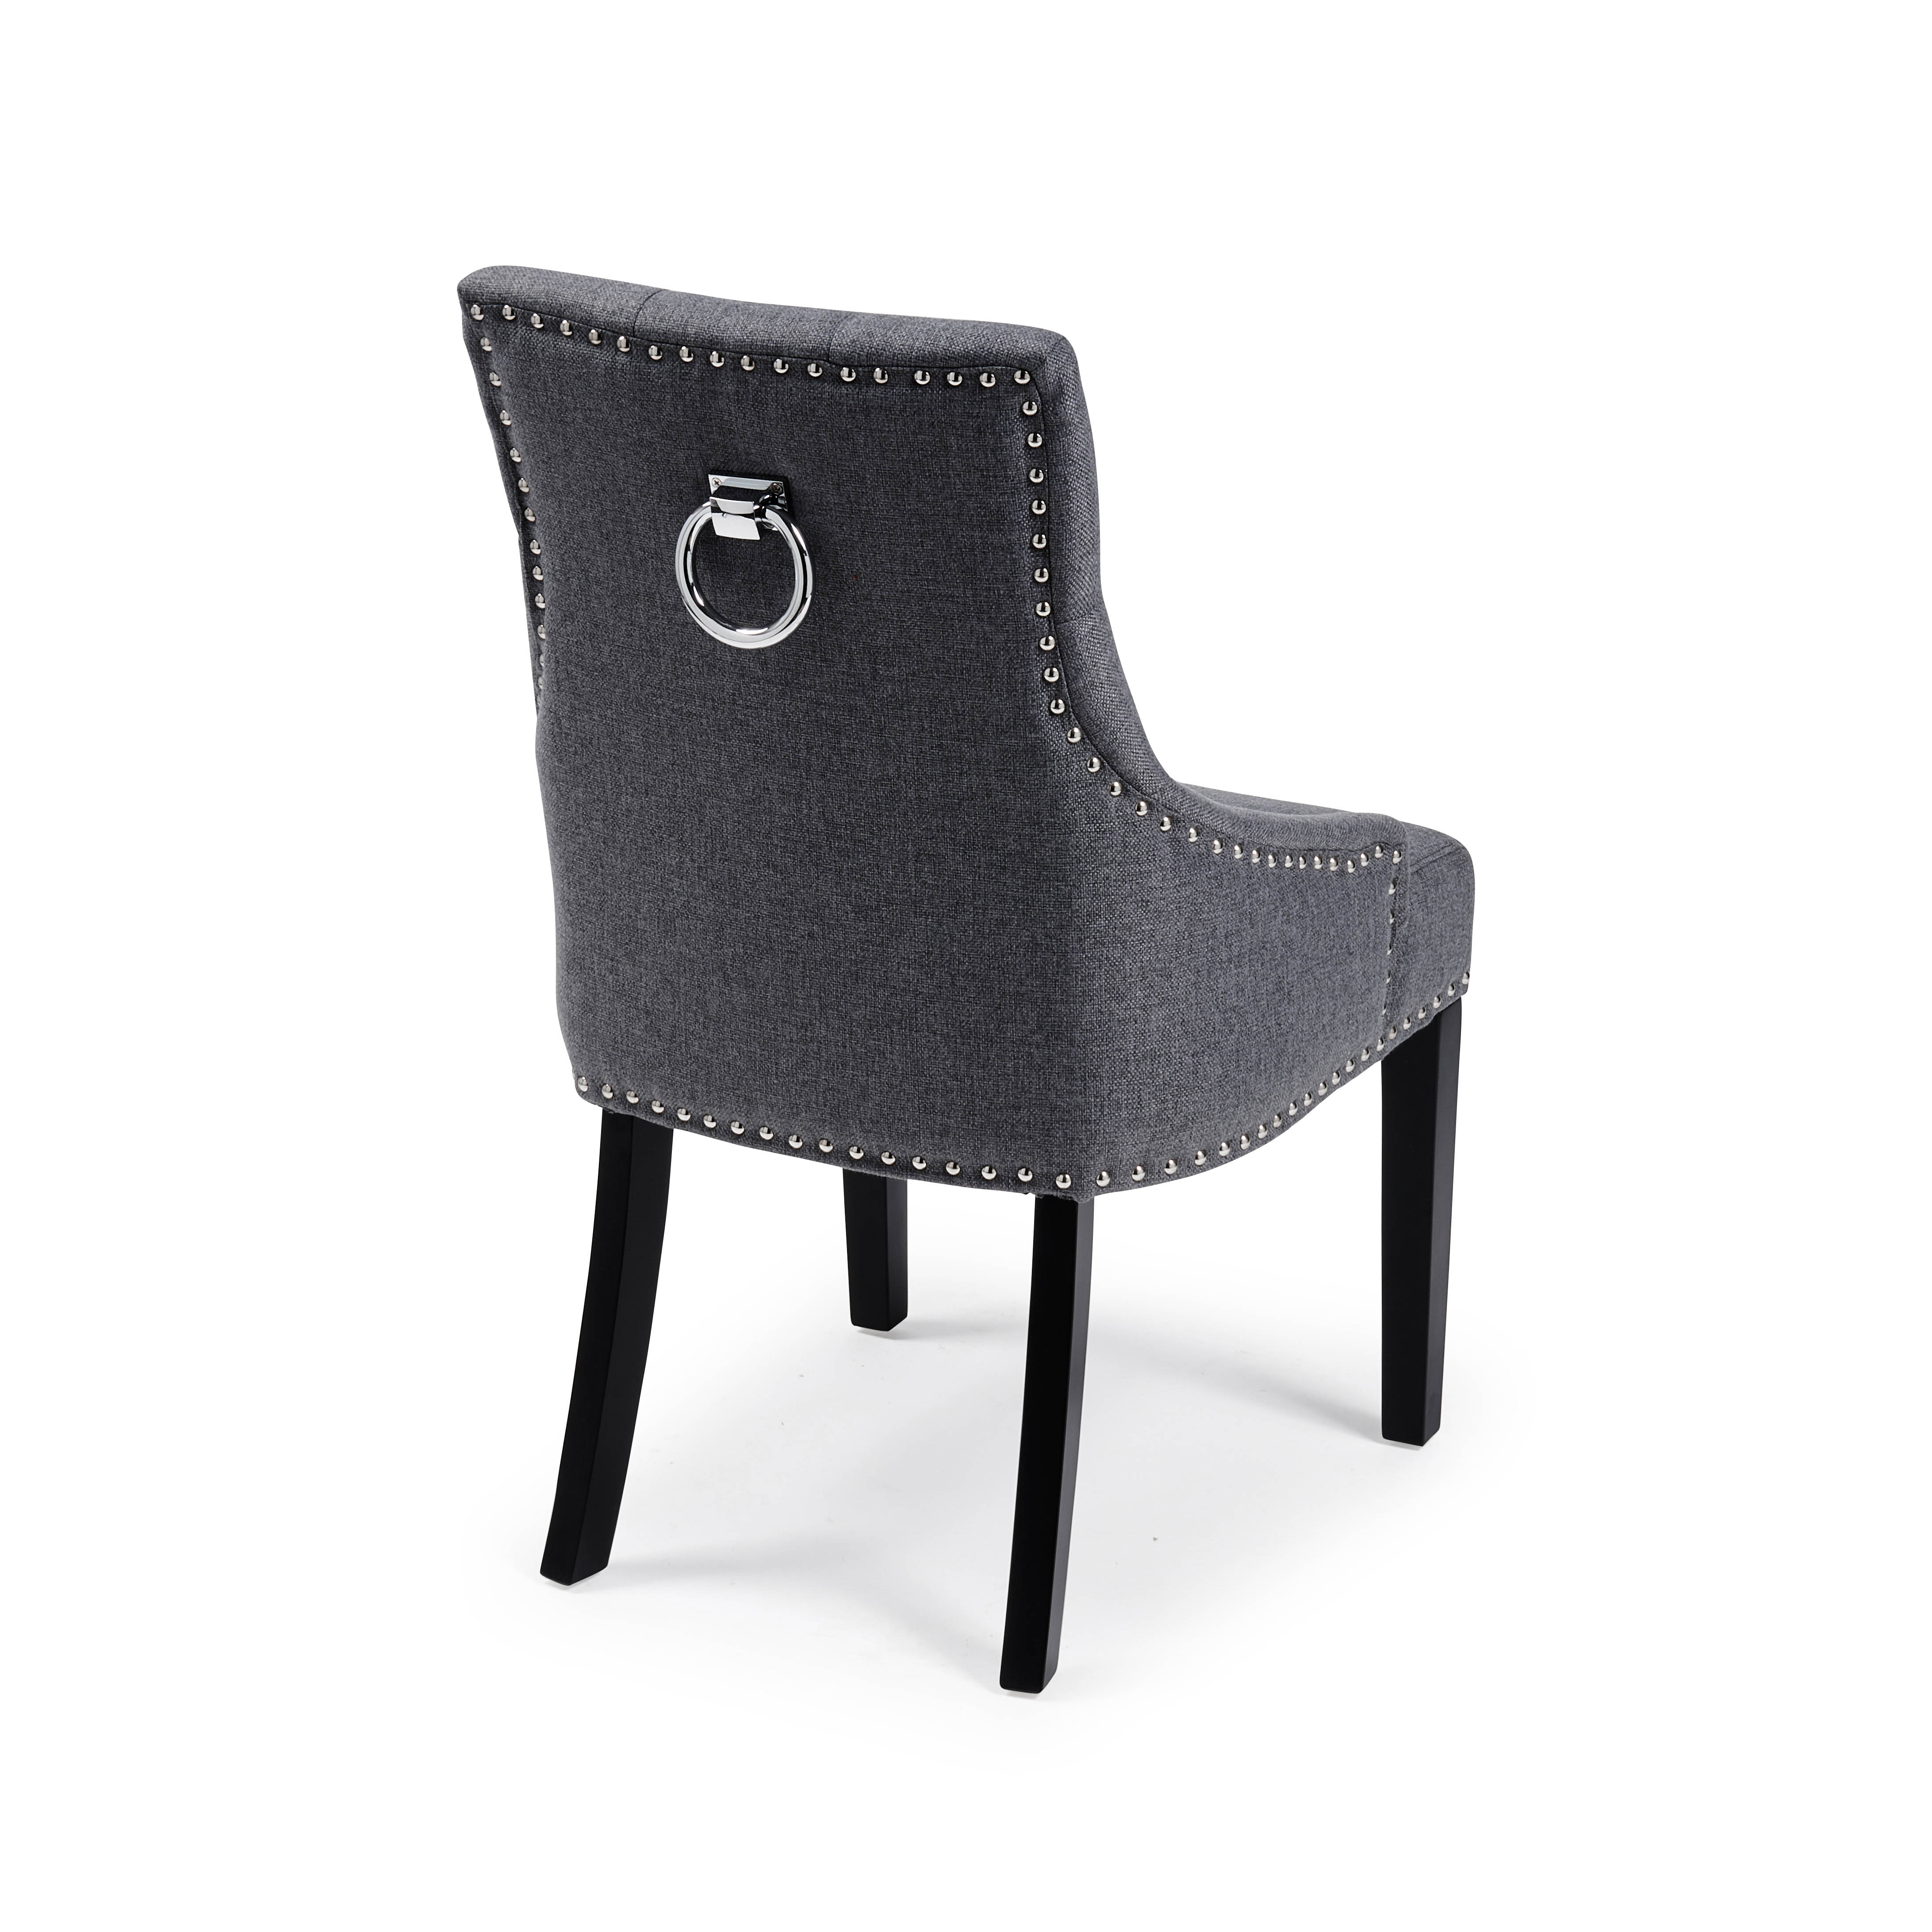 Chelsea Upholstered Scoop Dining Chair In A Charcoal Linen with Black Legs